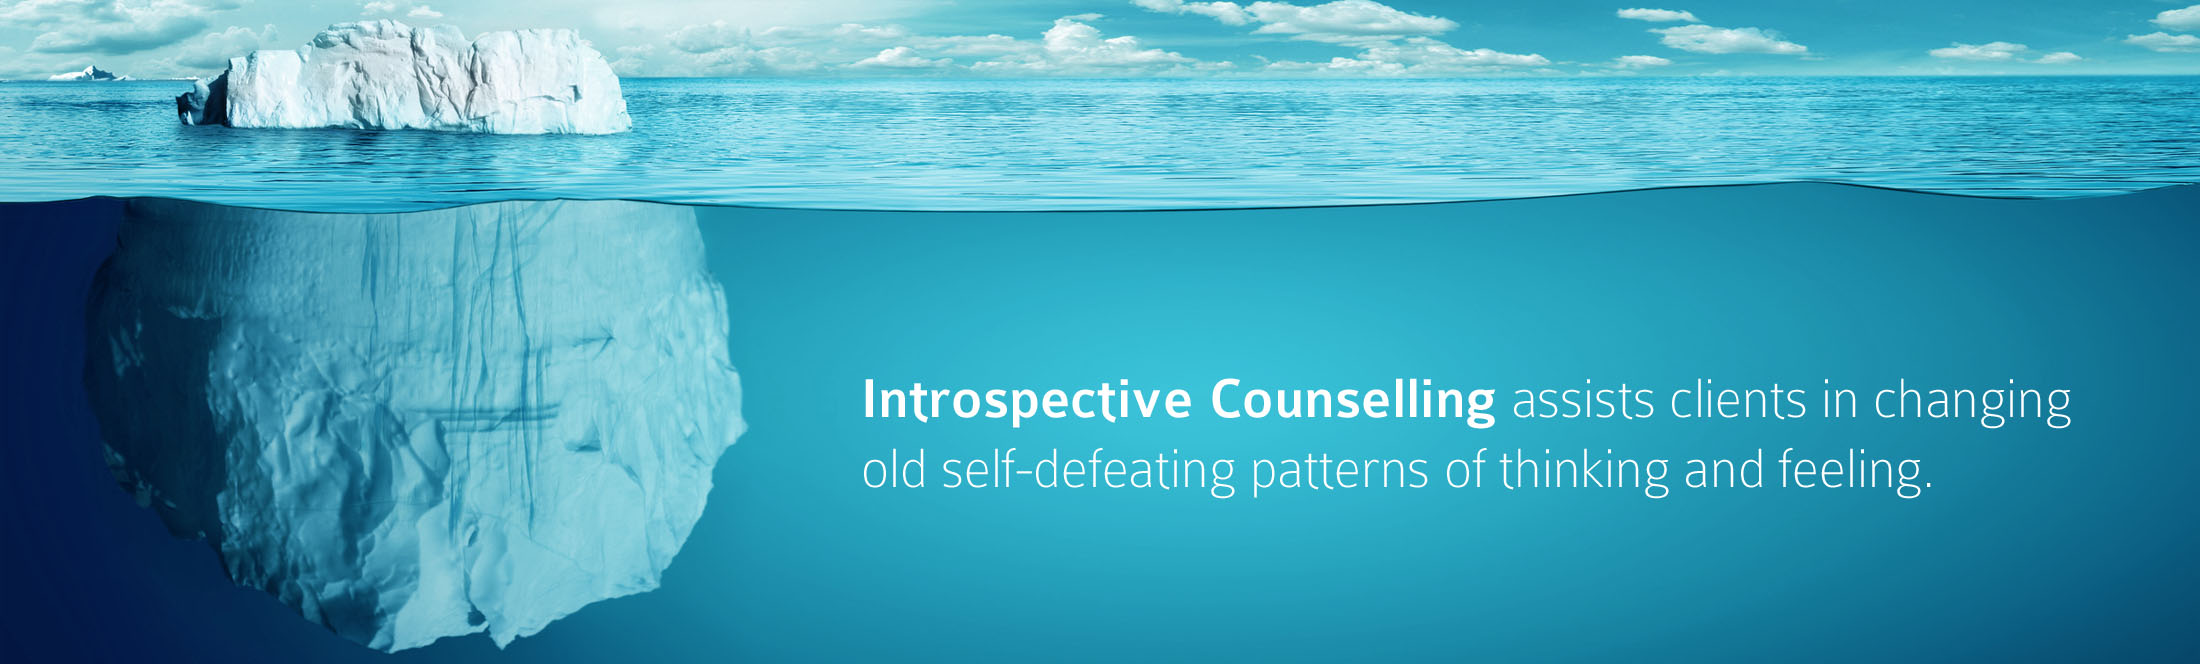 Introspective Counselling assists clients in changing old self-defeating patterns of thinking and feeling.